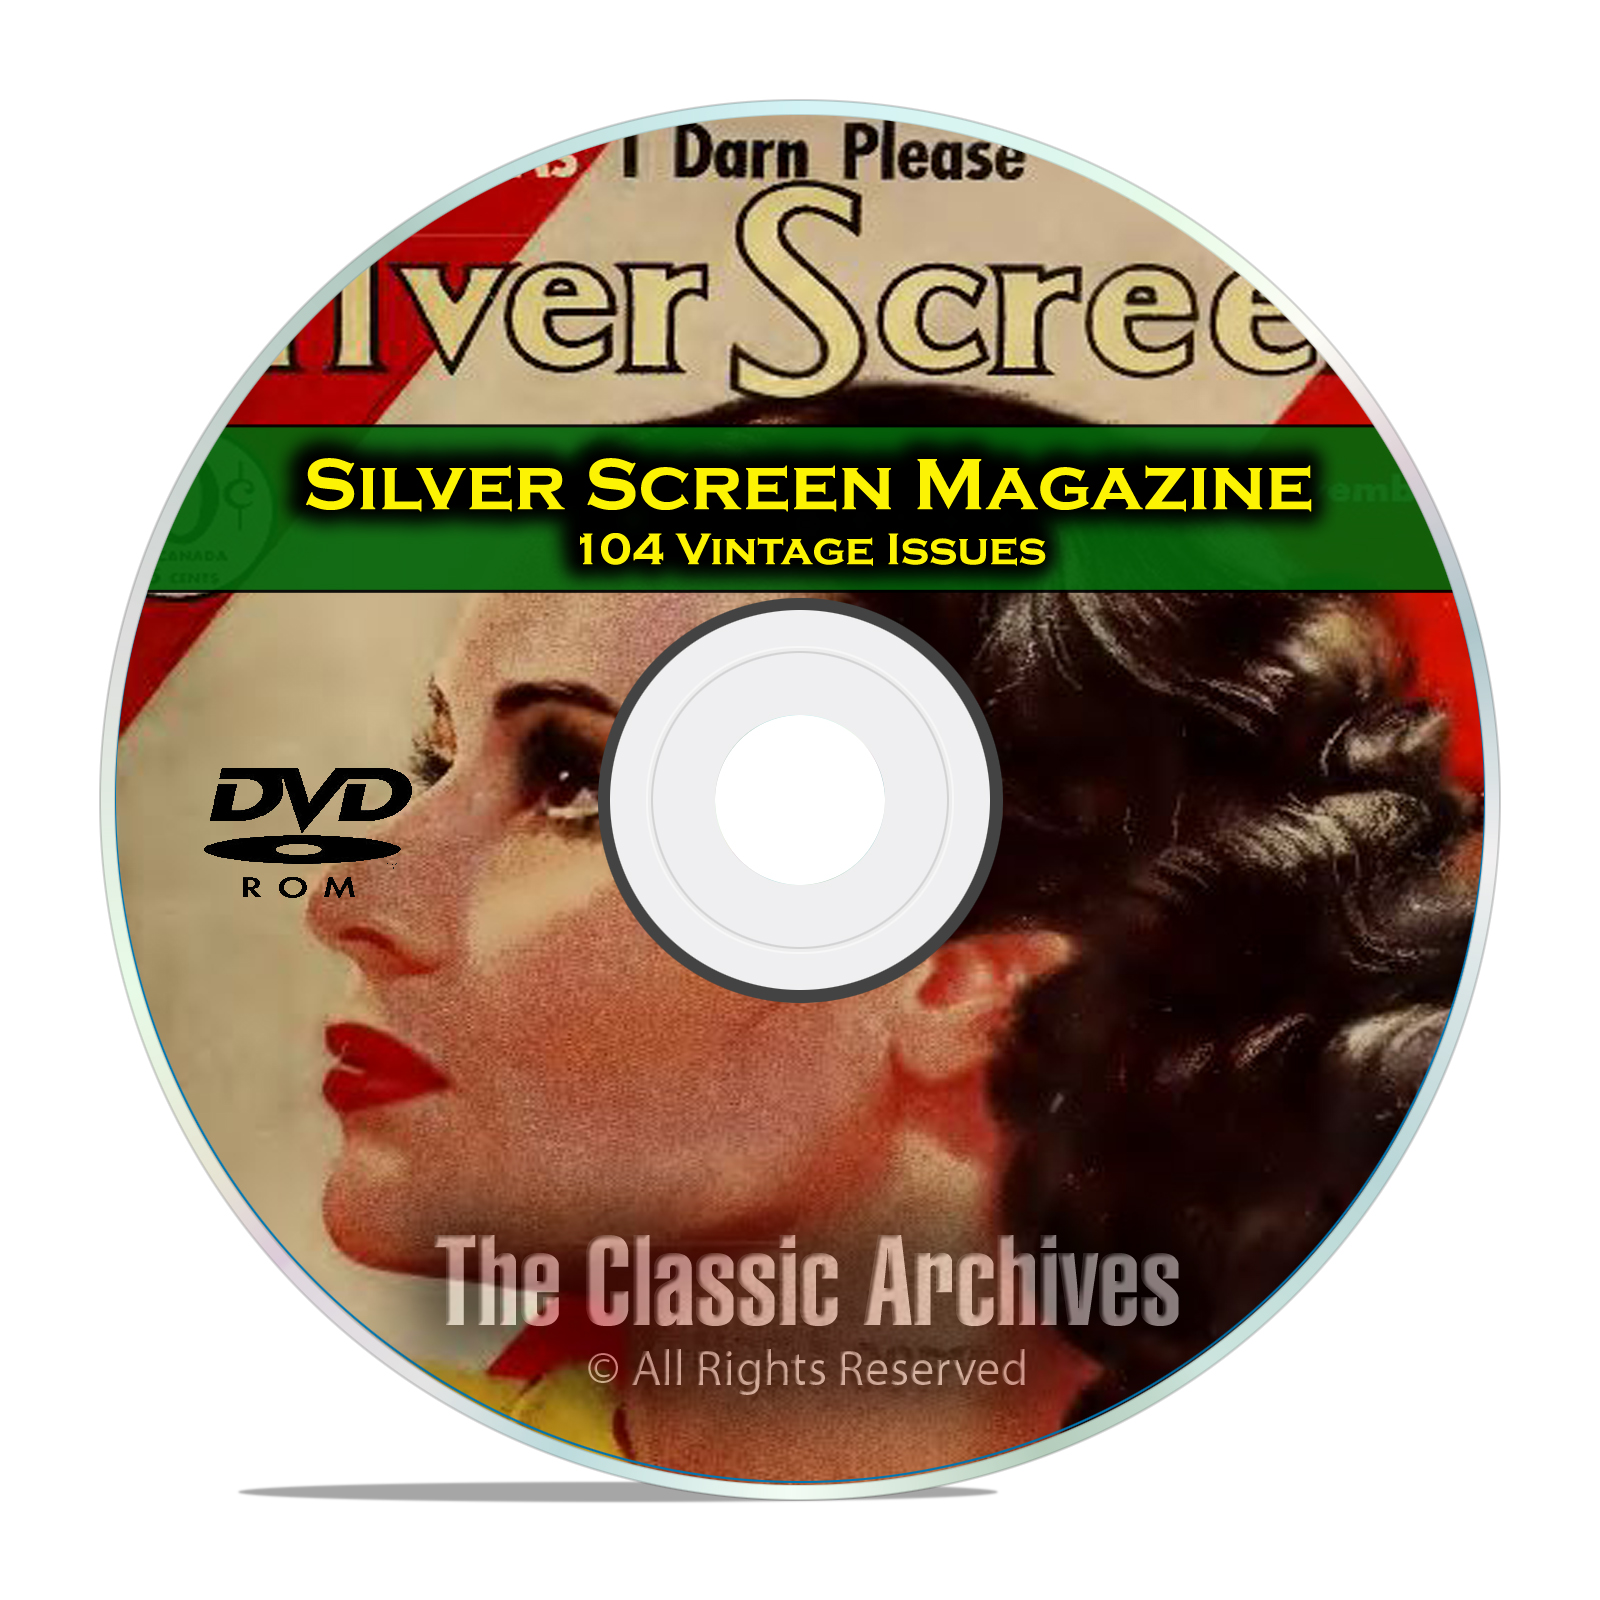 Silver Screen Magazine, 104 Issues, Vintage Hollywood Movie History, DVD